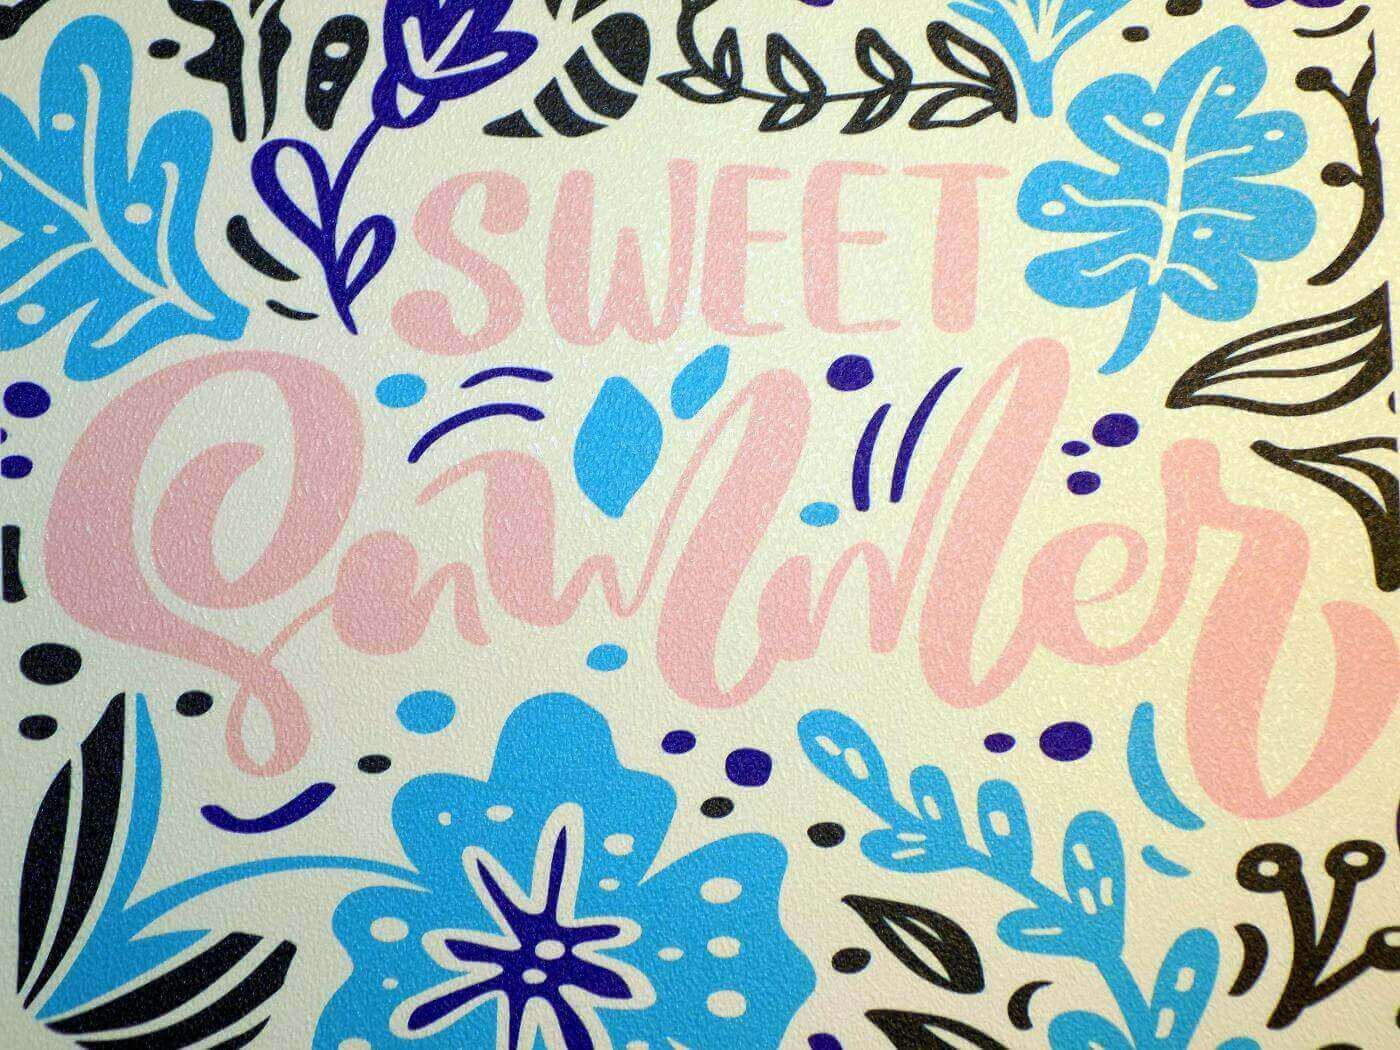 DECAL WALL TEXT ADHESIVE Pumice M